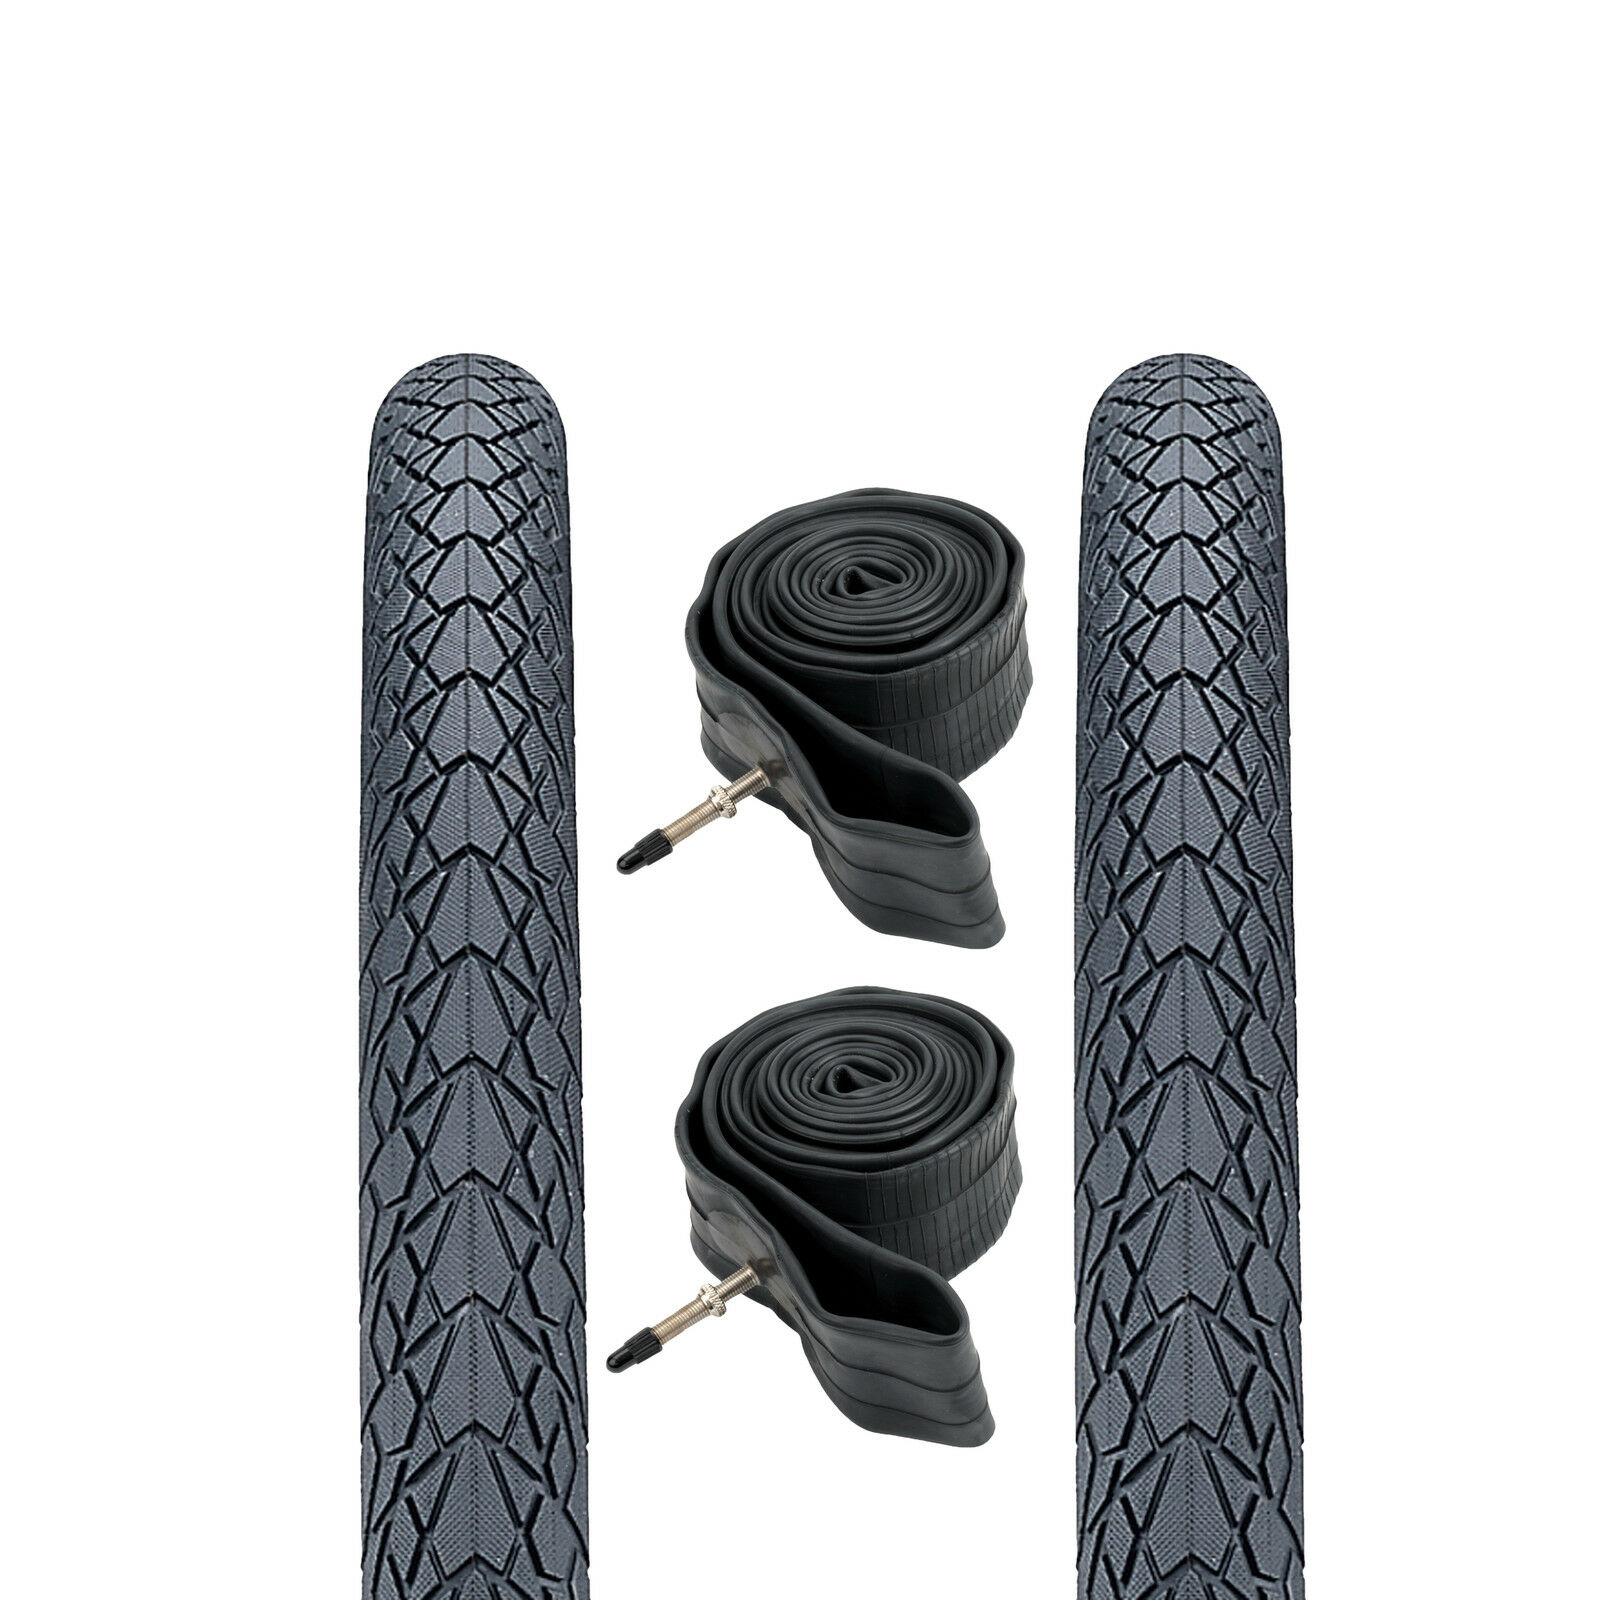 (Pair of) 27.5  650b Puncture Resistant Mountain Bike Road Tyres & Inner Tubes